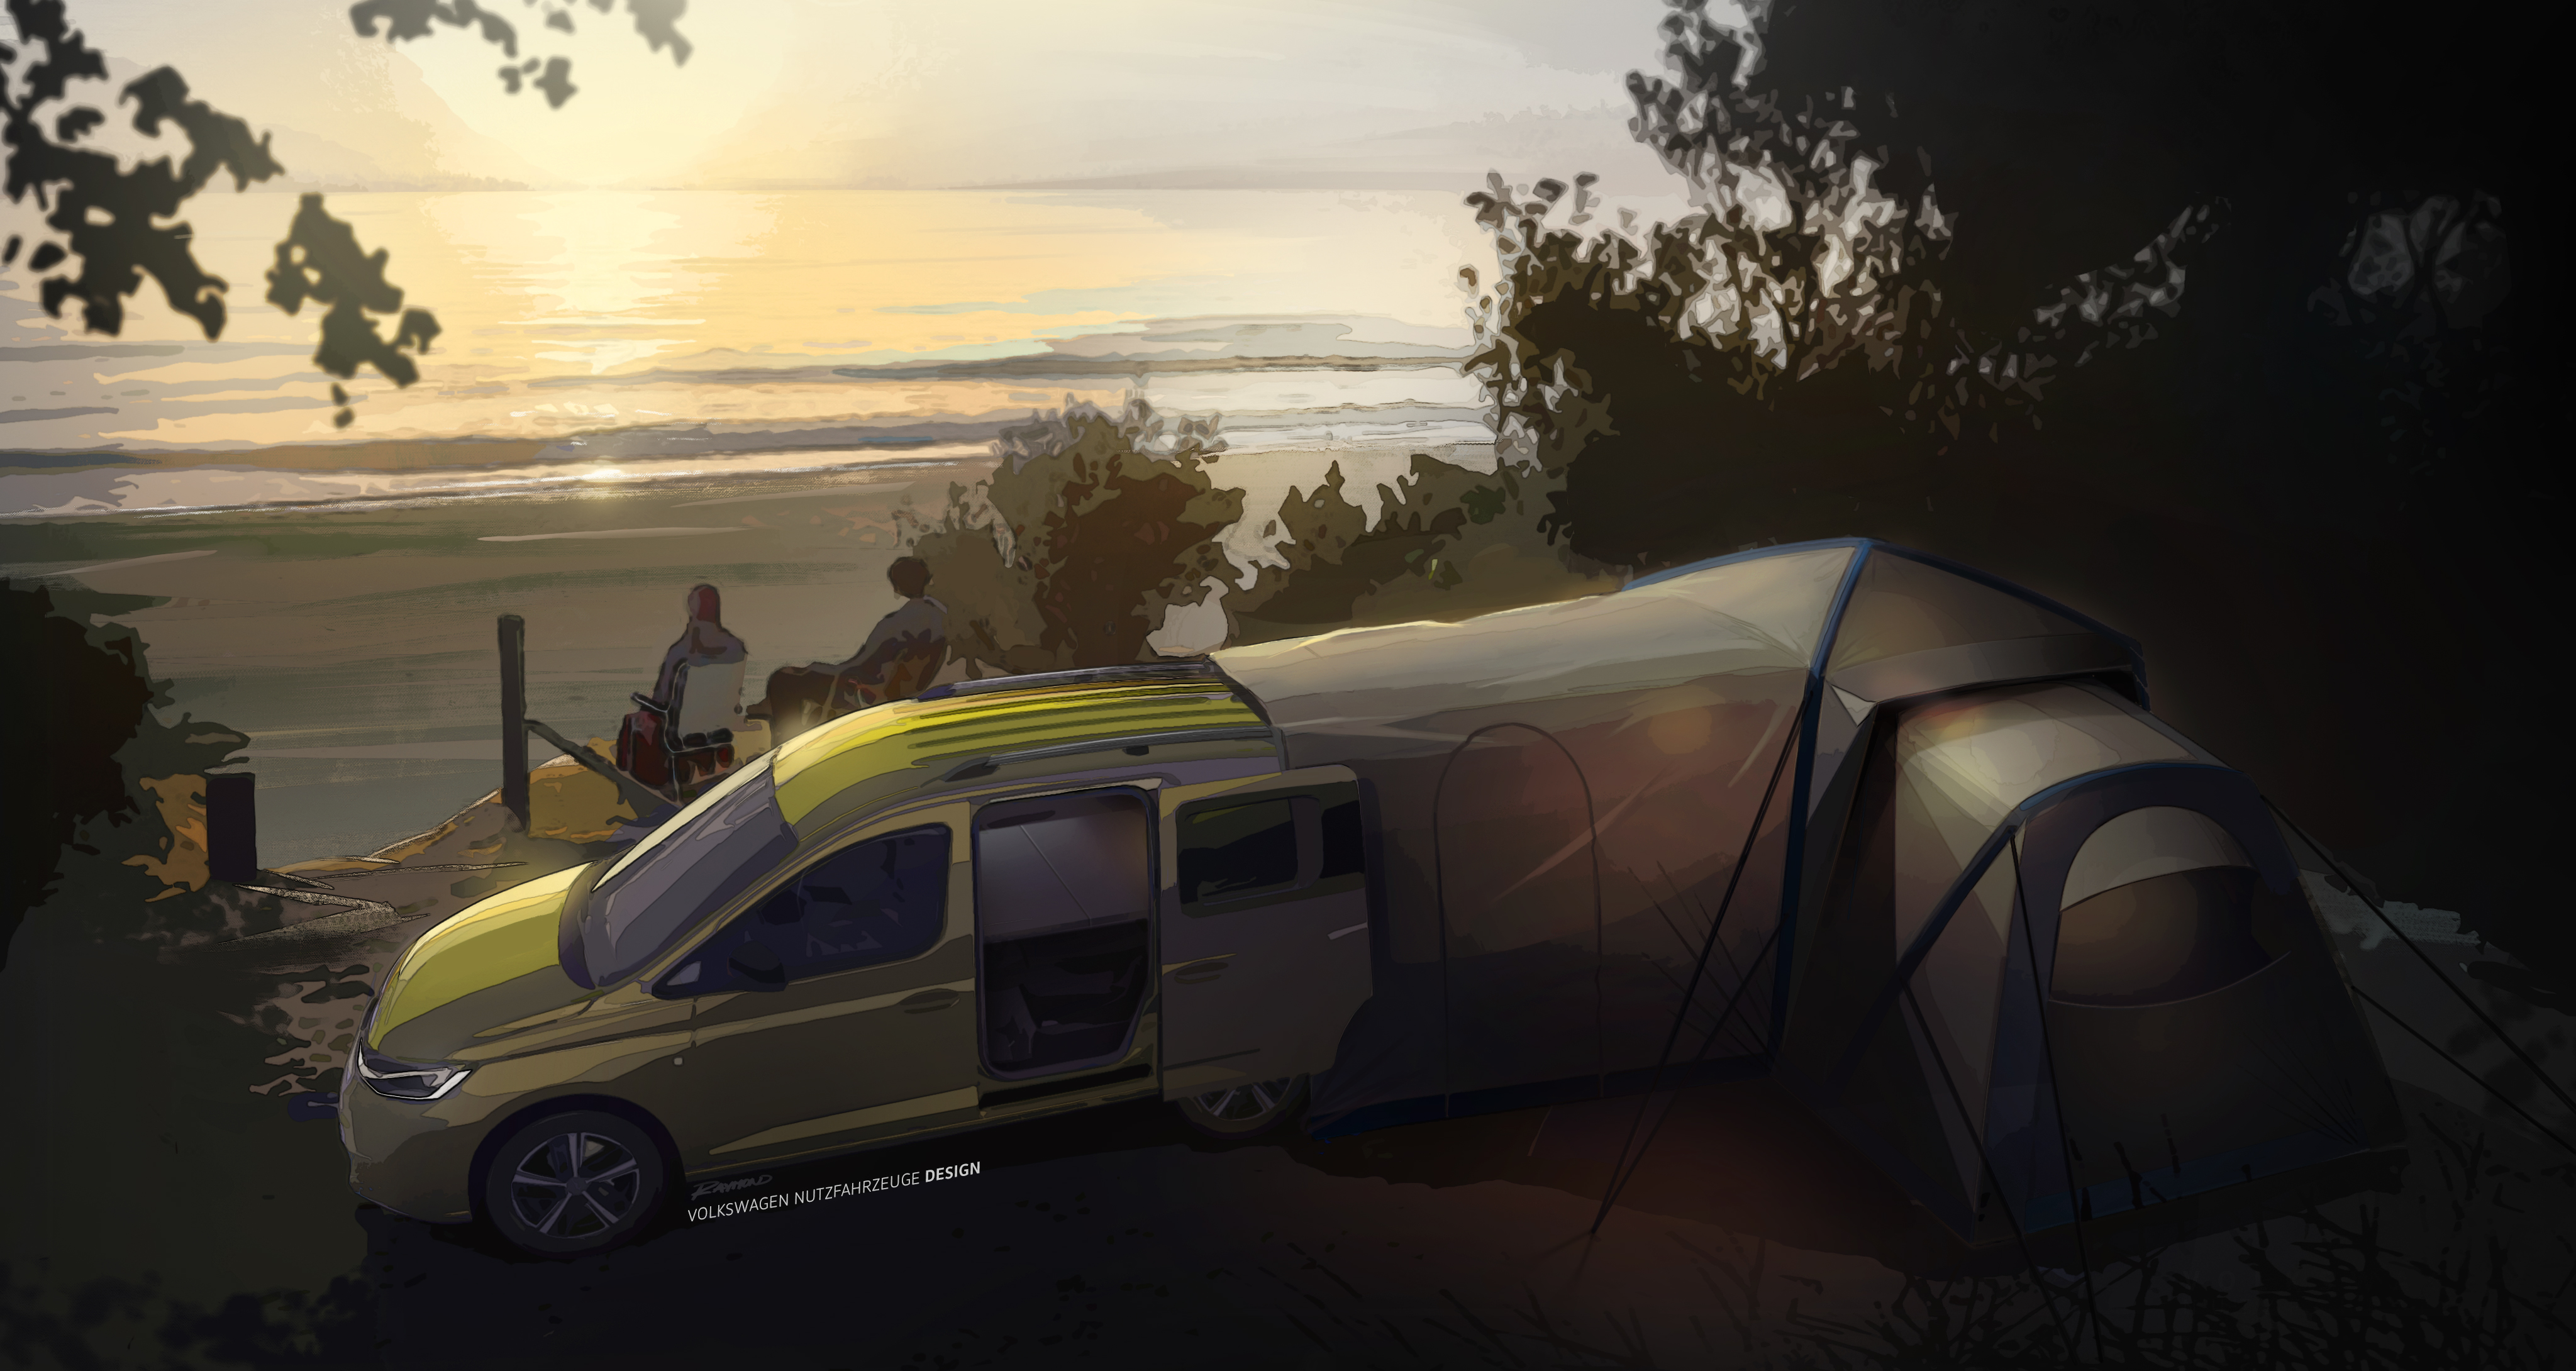 Volkswagen teases the expandable tent system of its new Caddy Mini-Camper